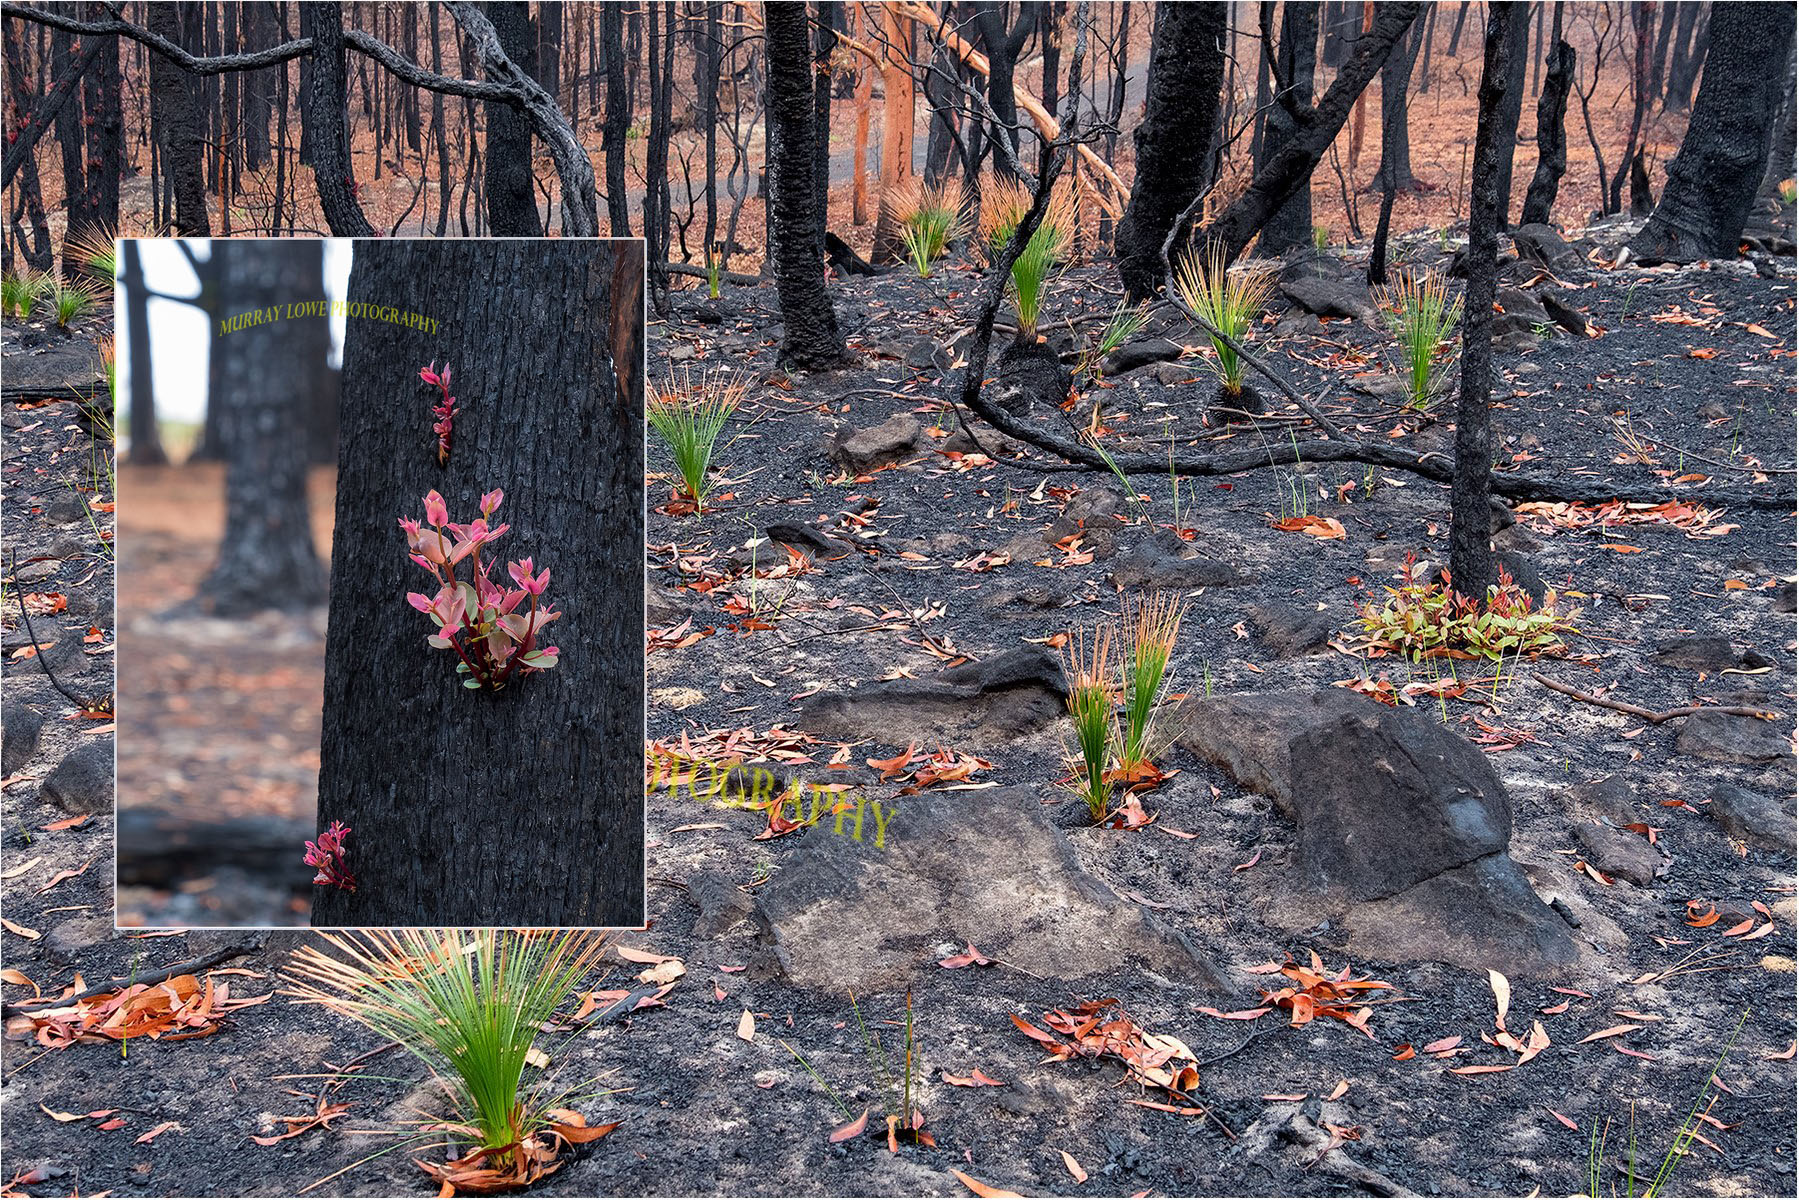 Stunning Photos Show Plants Already Regenerating in Scorched Australian Forest